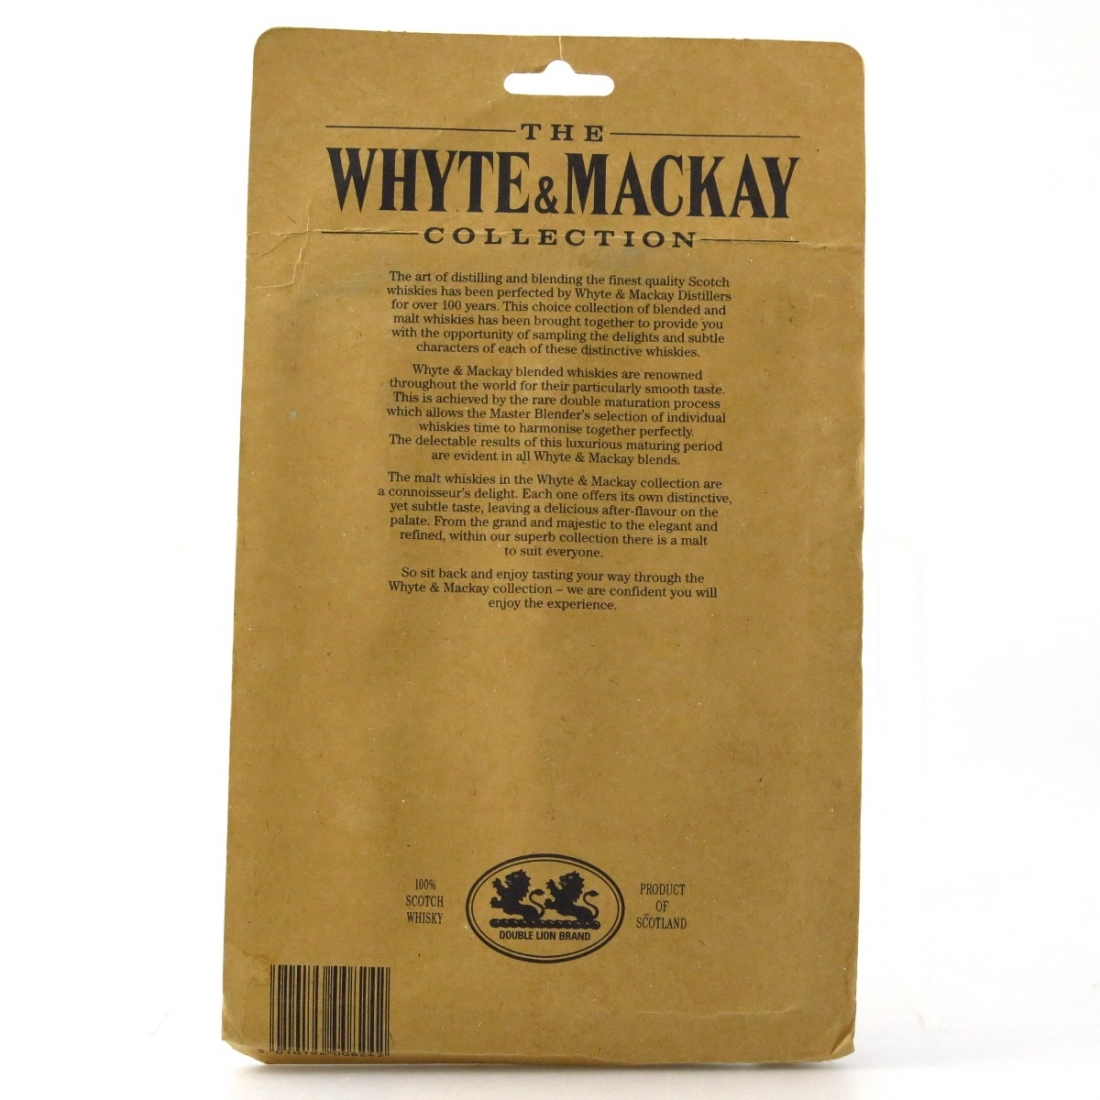 Whyte and Mackay Scotch Miniature Collection 6 x 5cl / includes Damore 12 Year Old